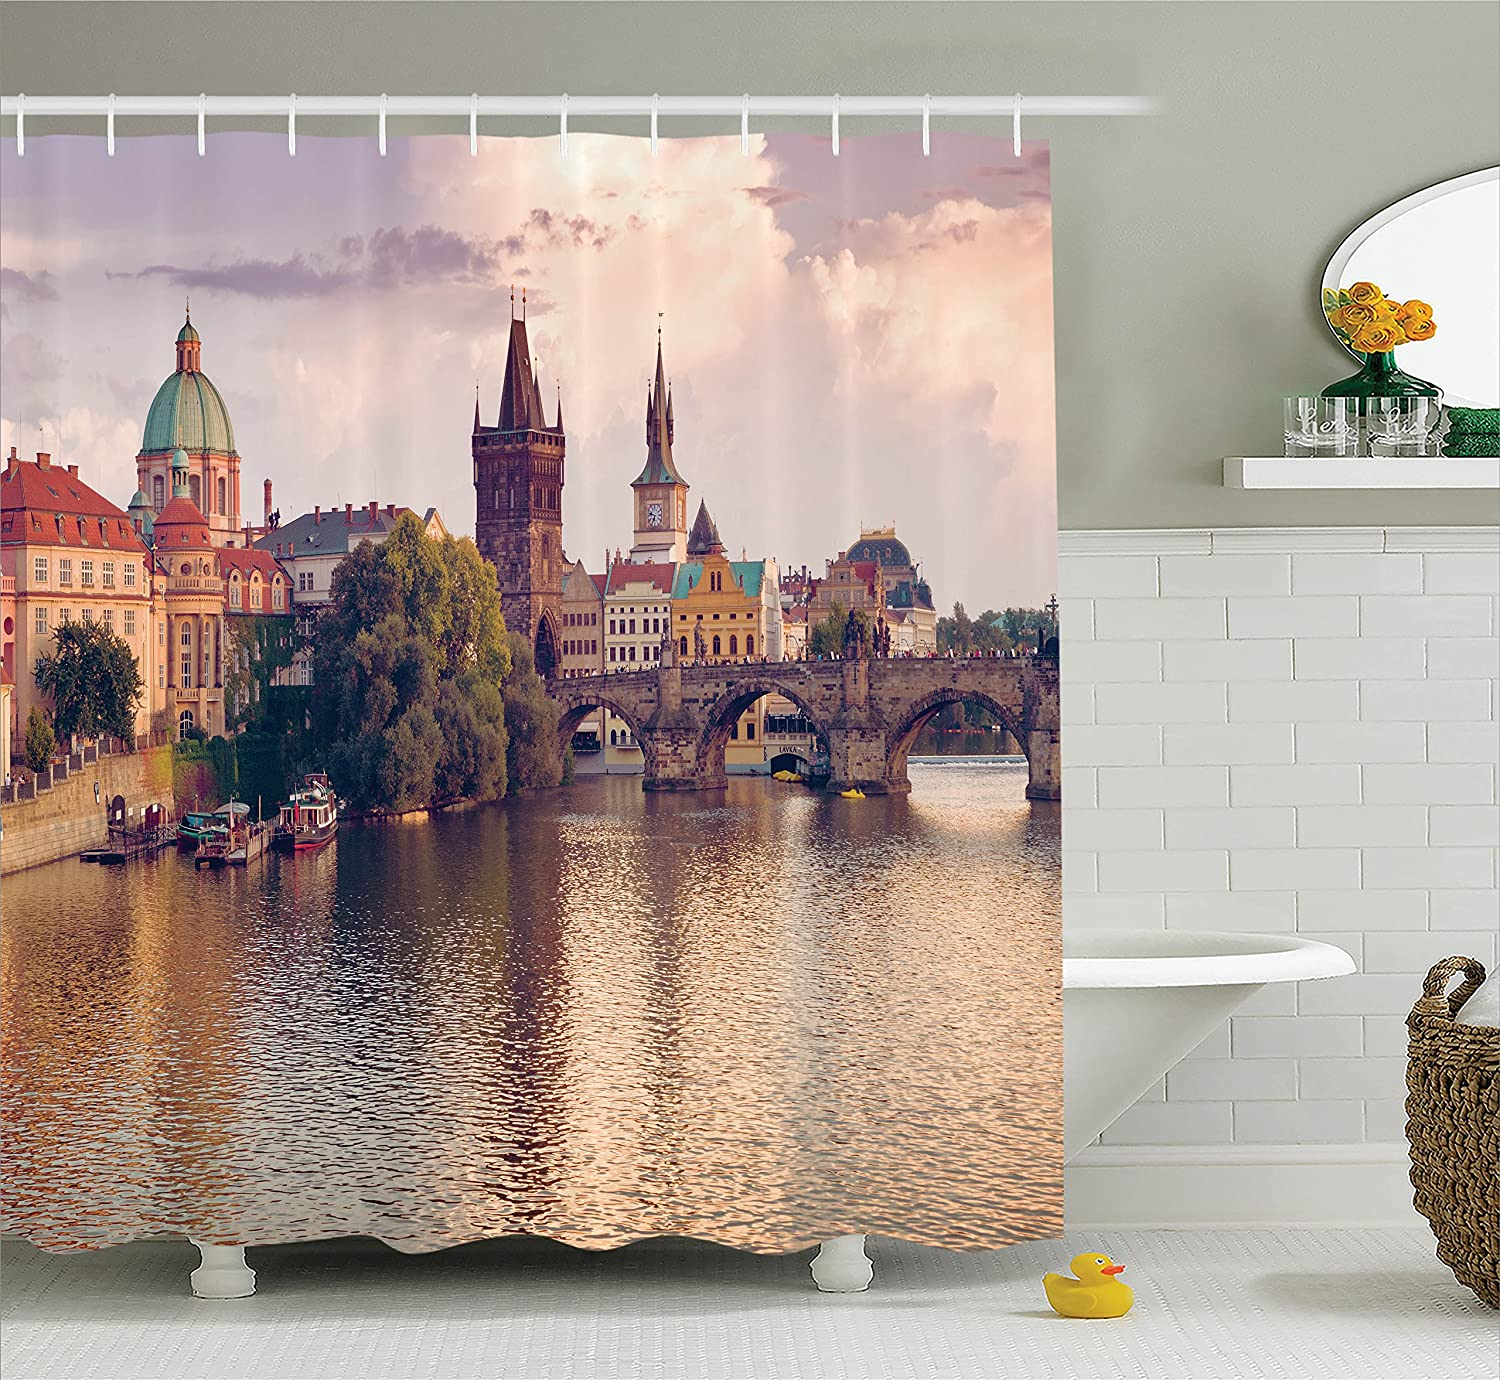 Ambesonne Landscape Shower Curtain, Pastoral View at Charles Bridge Spires of Prague Central Europe Gothic Buildings, Cloth Fabric Bathroom Decor Set with Hooks, 70